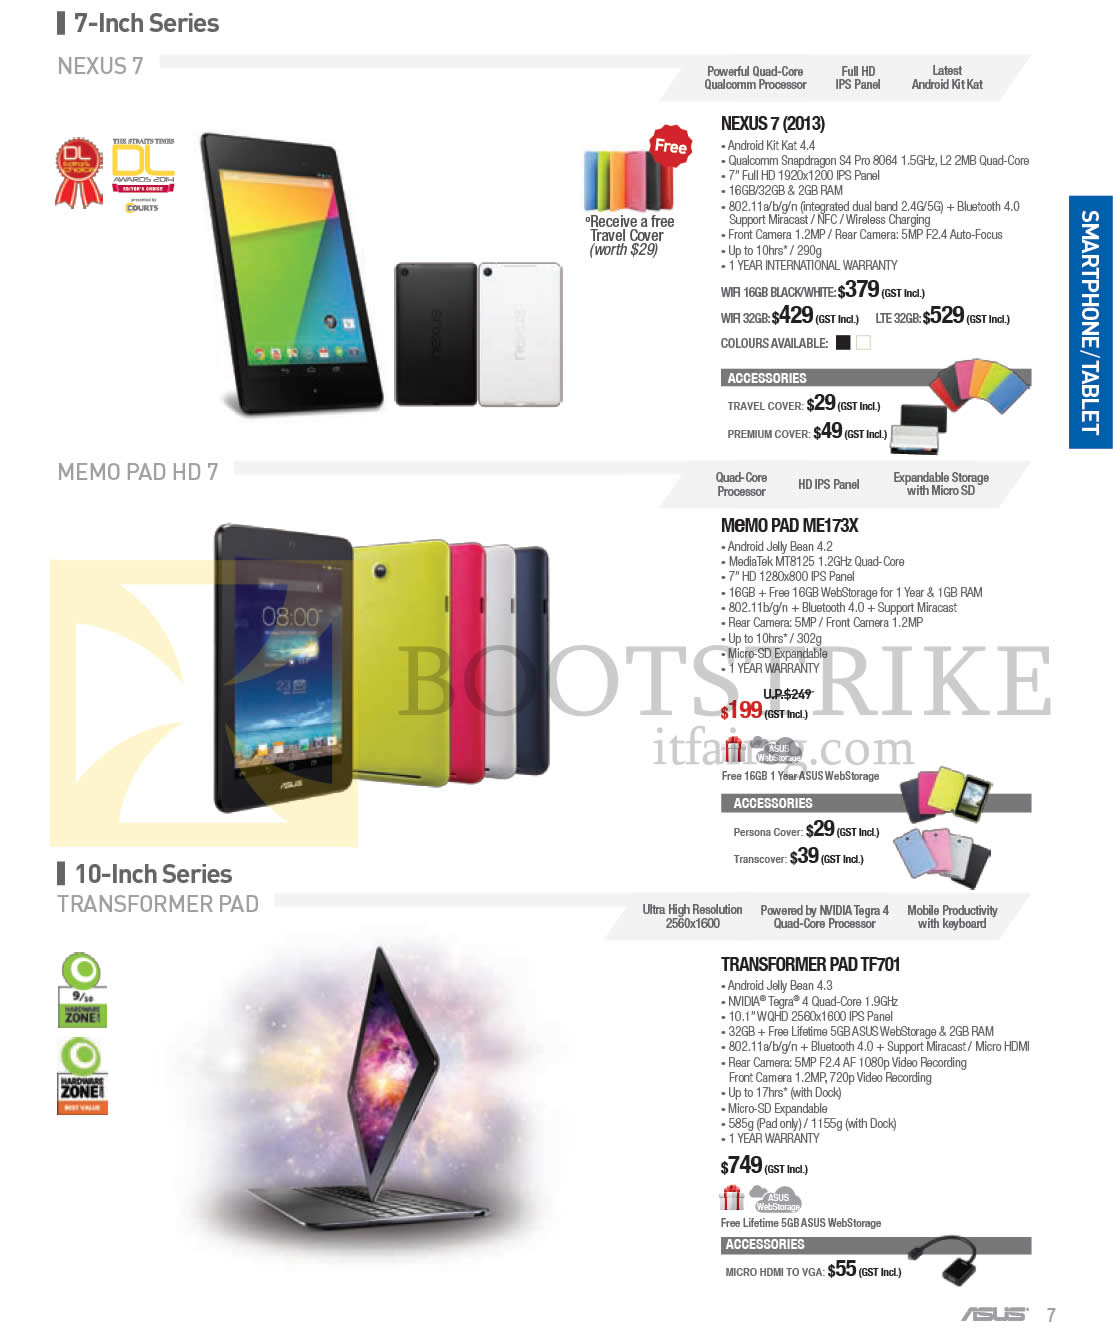 Asus smartphones tablet nexus 7 memo pad me173x for O tablet price list 2014